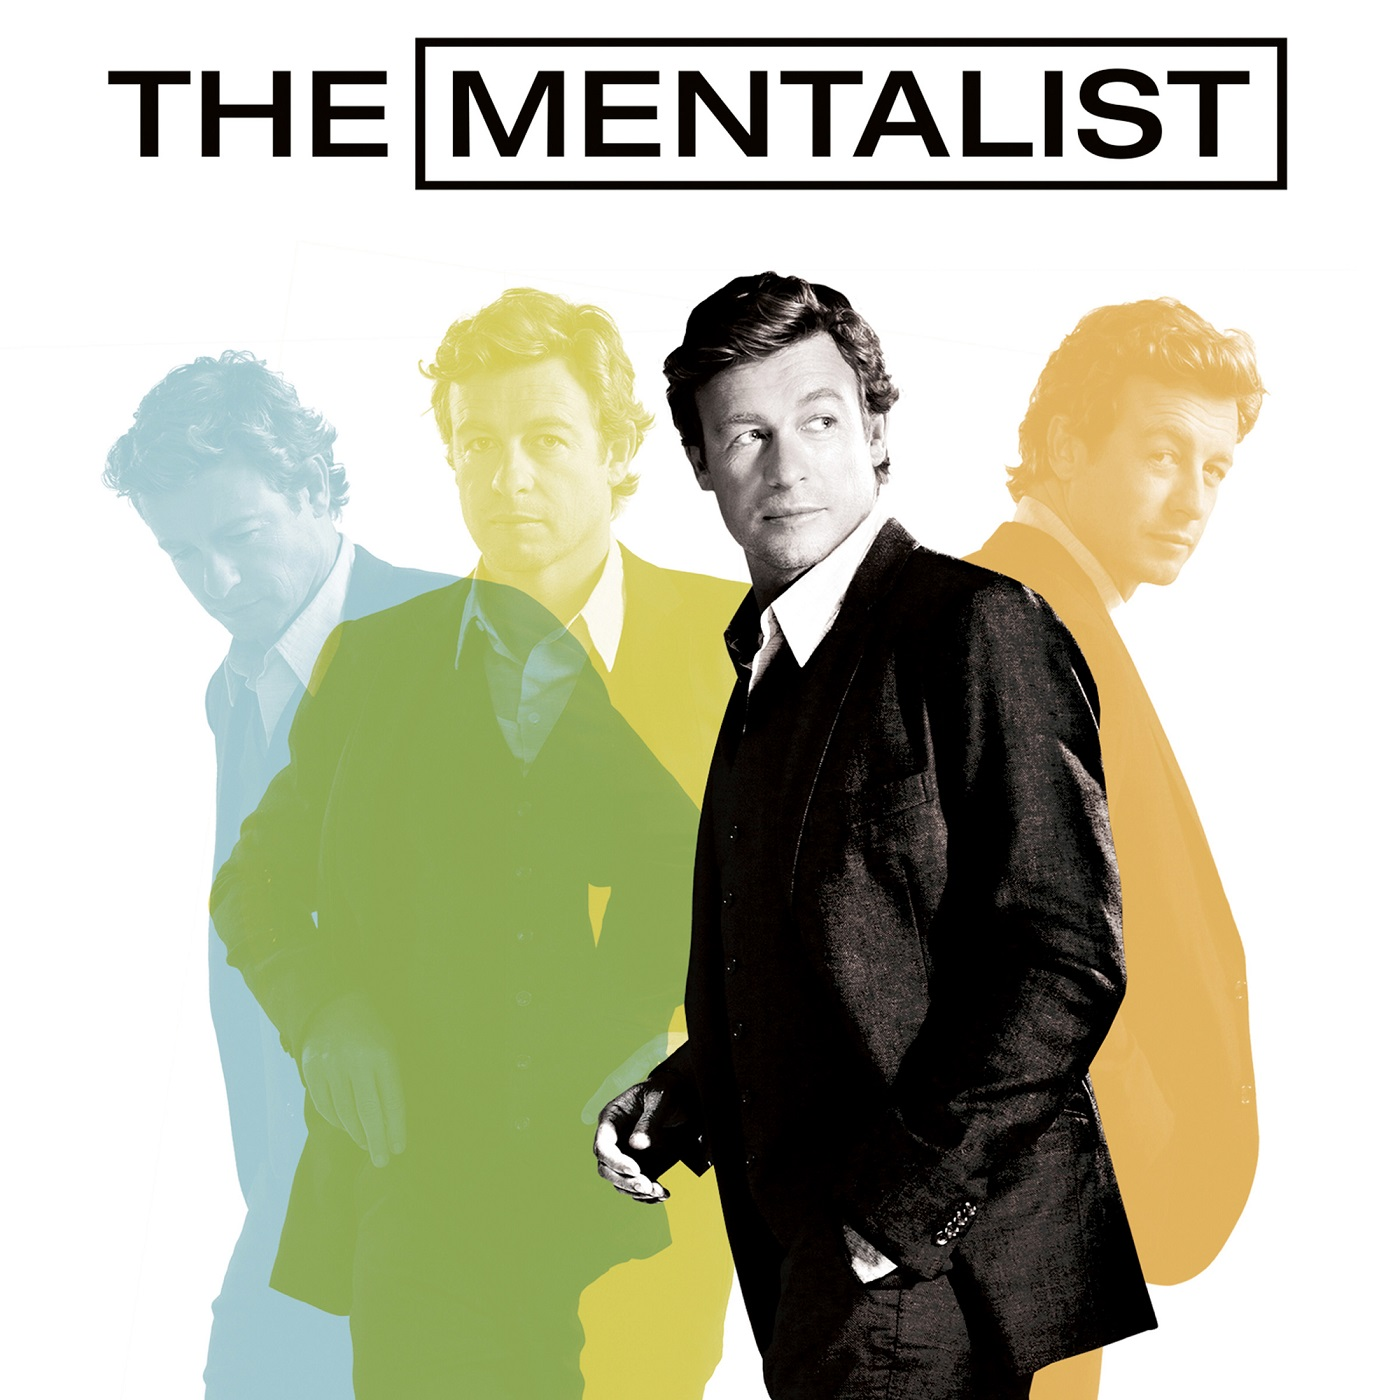 The Mentalist Seasons 01-07 | S07E01-E05 HDTV |720P Qfgm